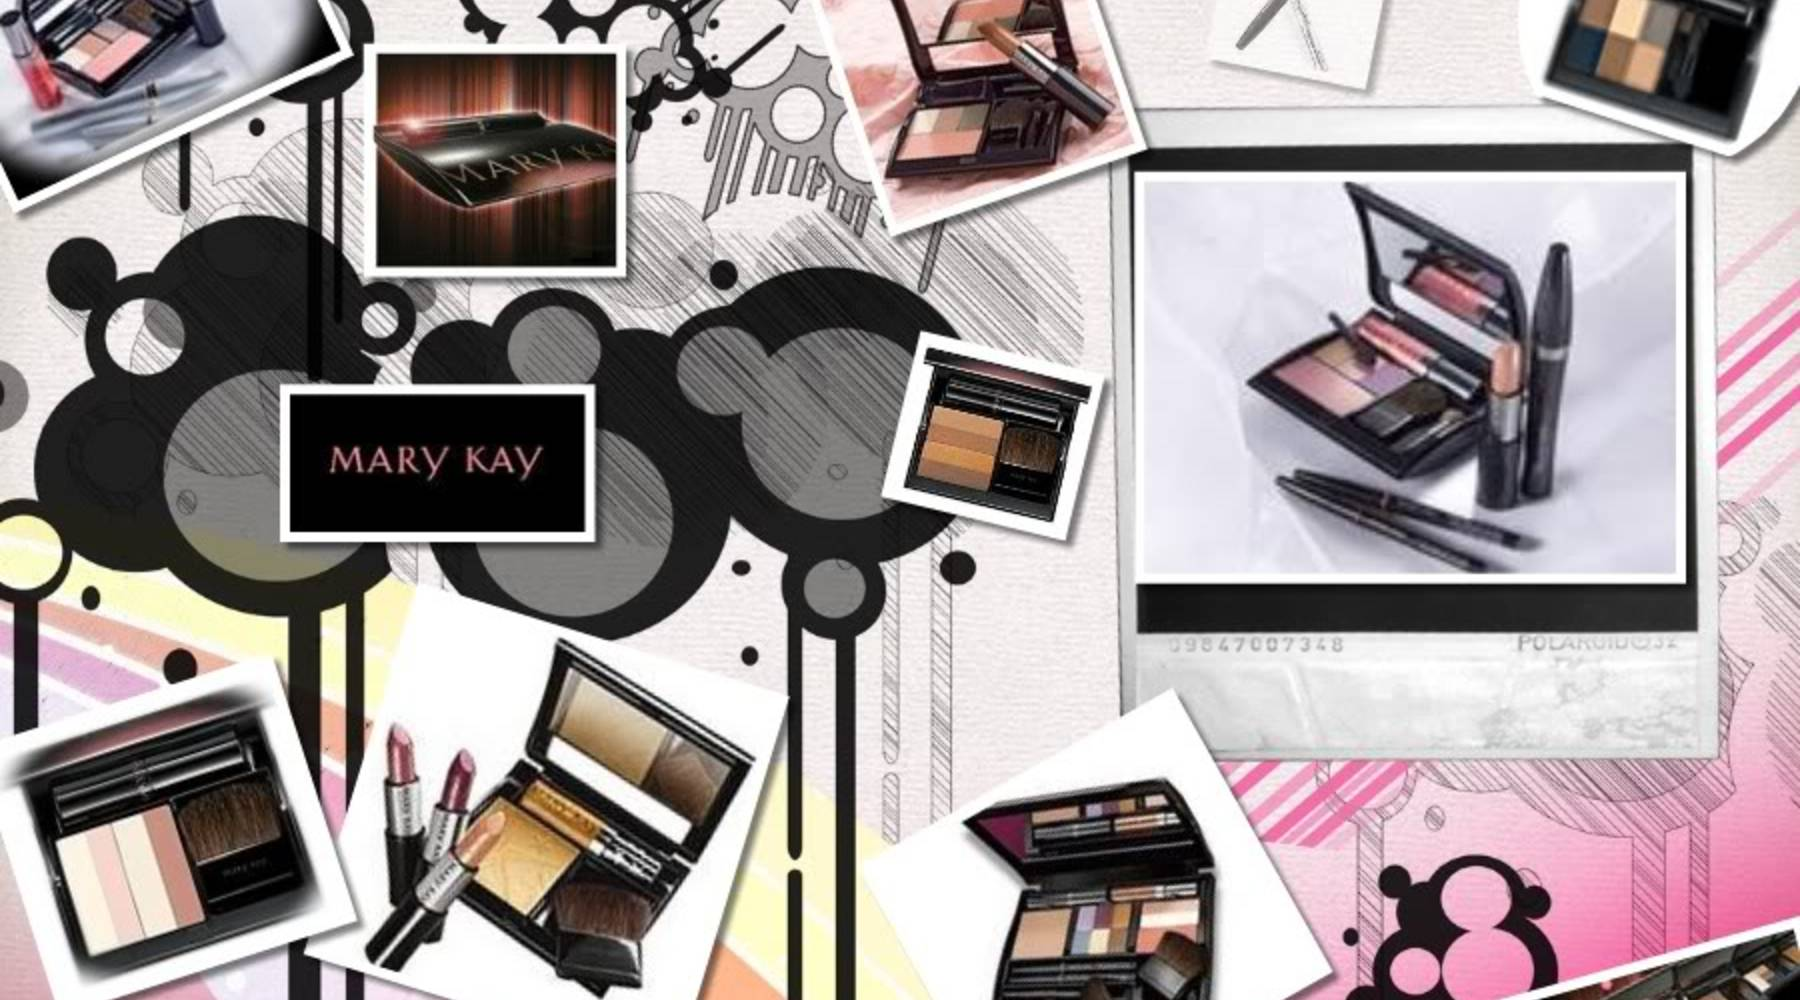 Life not so rosy for women selling Mary Kay cosmetics